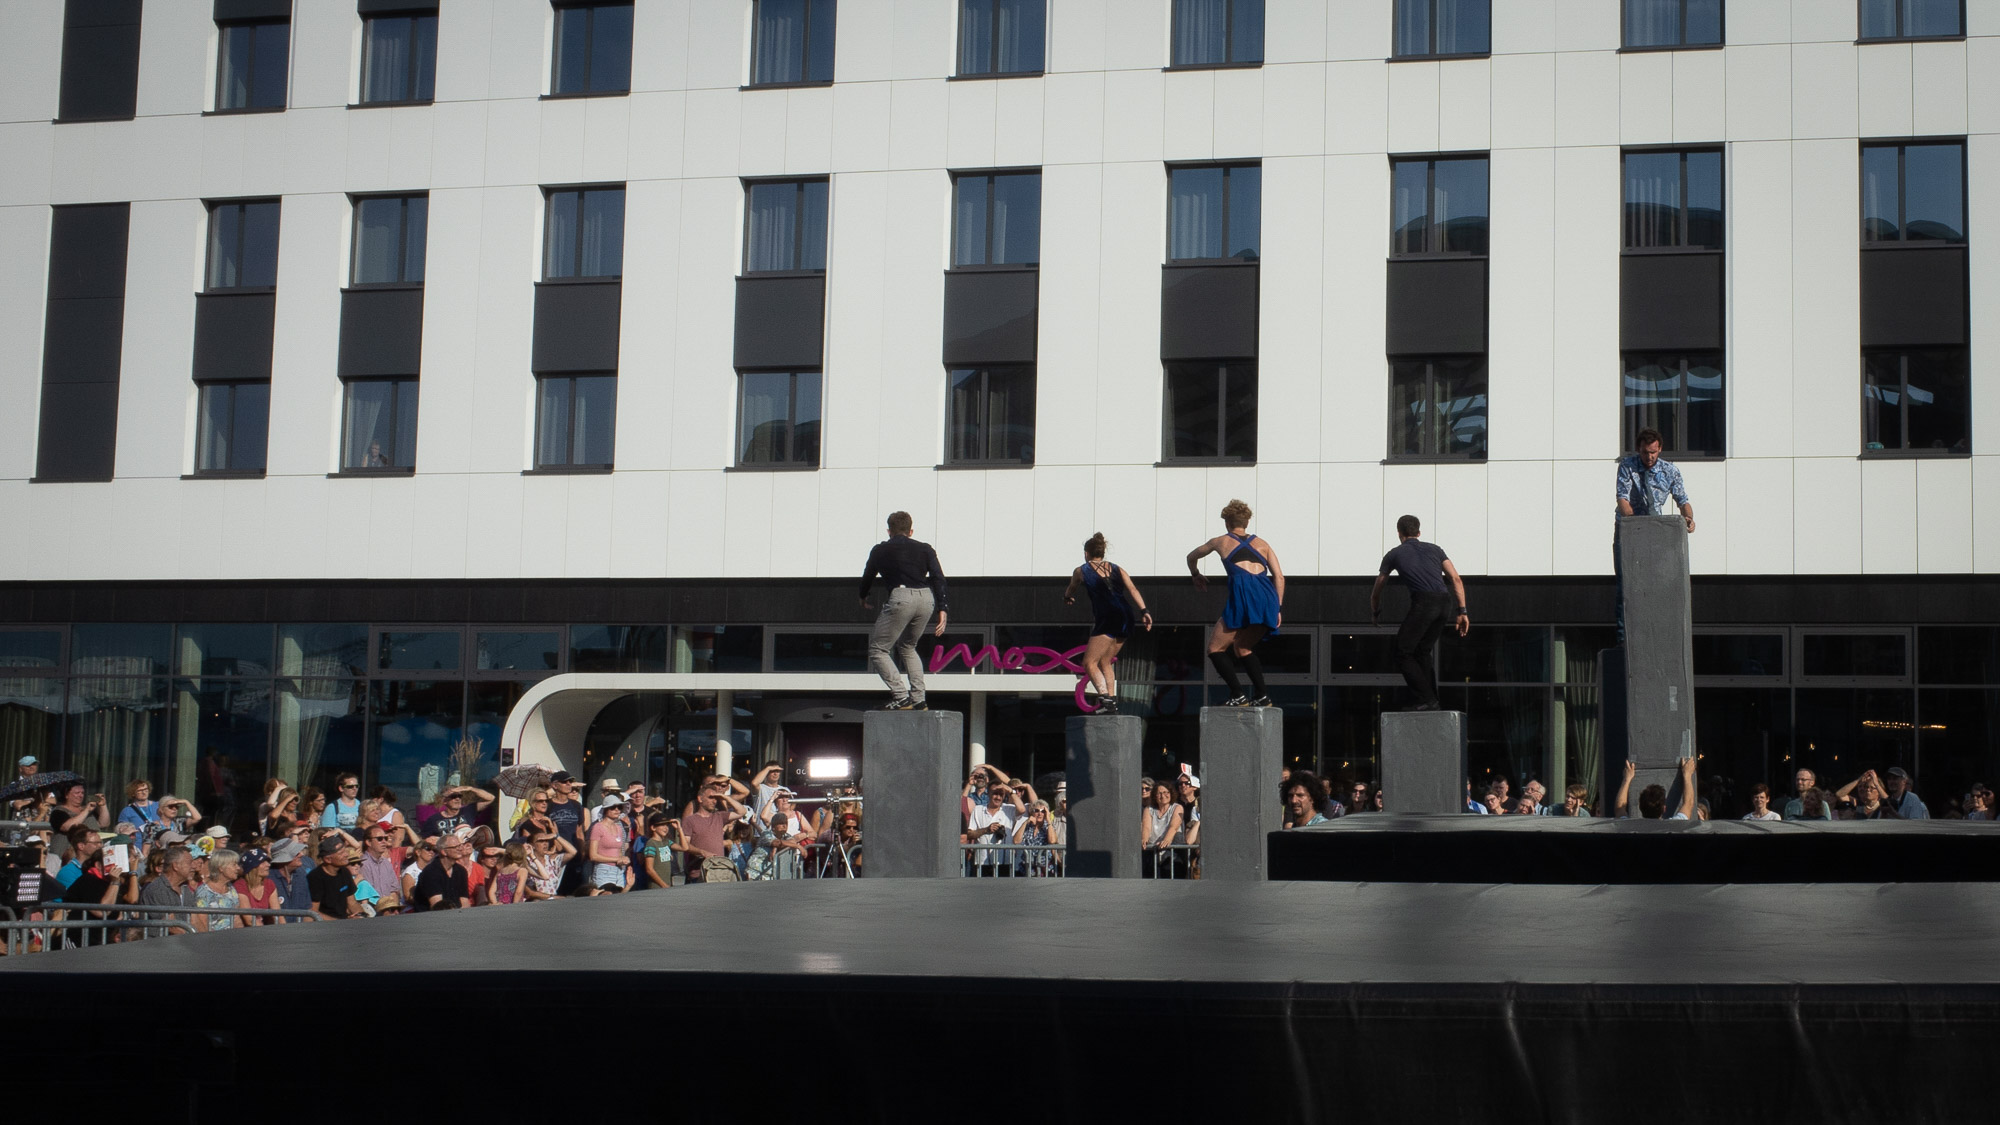 mgall / Motionhouse (Int. Strassentheater Festival Ludwigshafen)